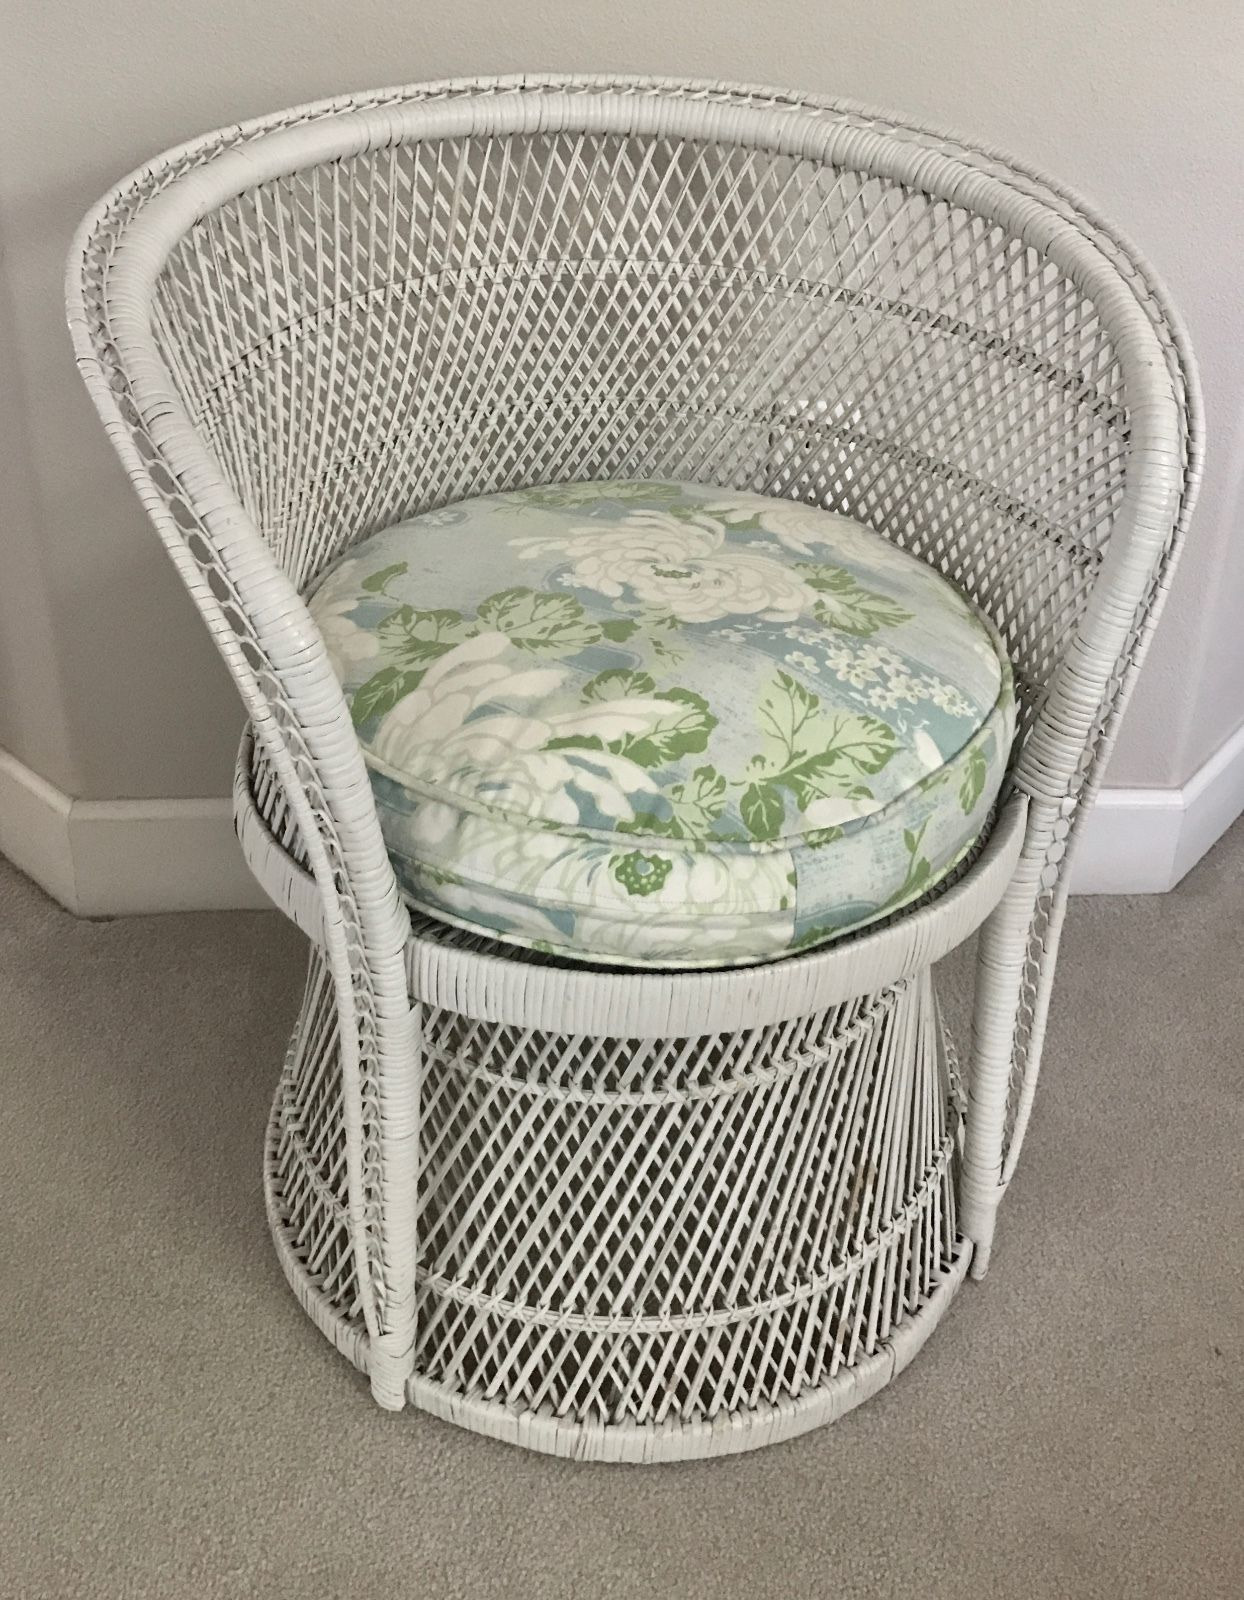 Antique Wicker Furniture for Sale On Ebay New Vintage White Buri Peacock Wicker Chair Shabby Chic Cottage Rattan Fan